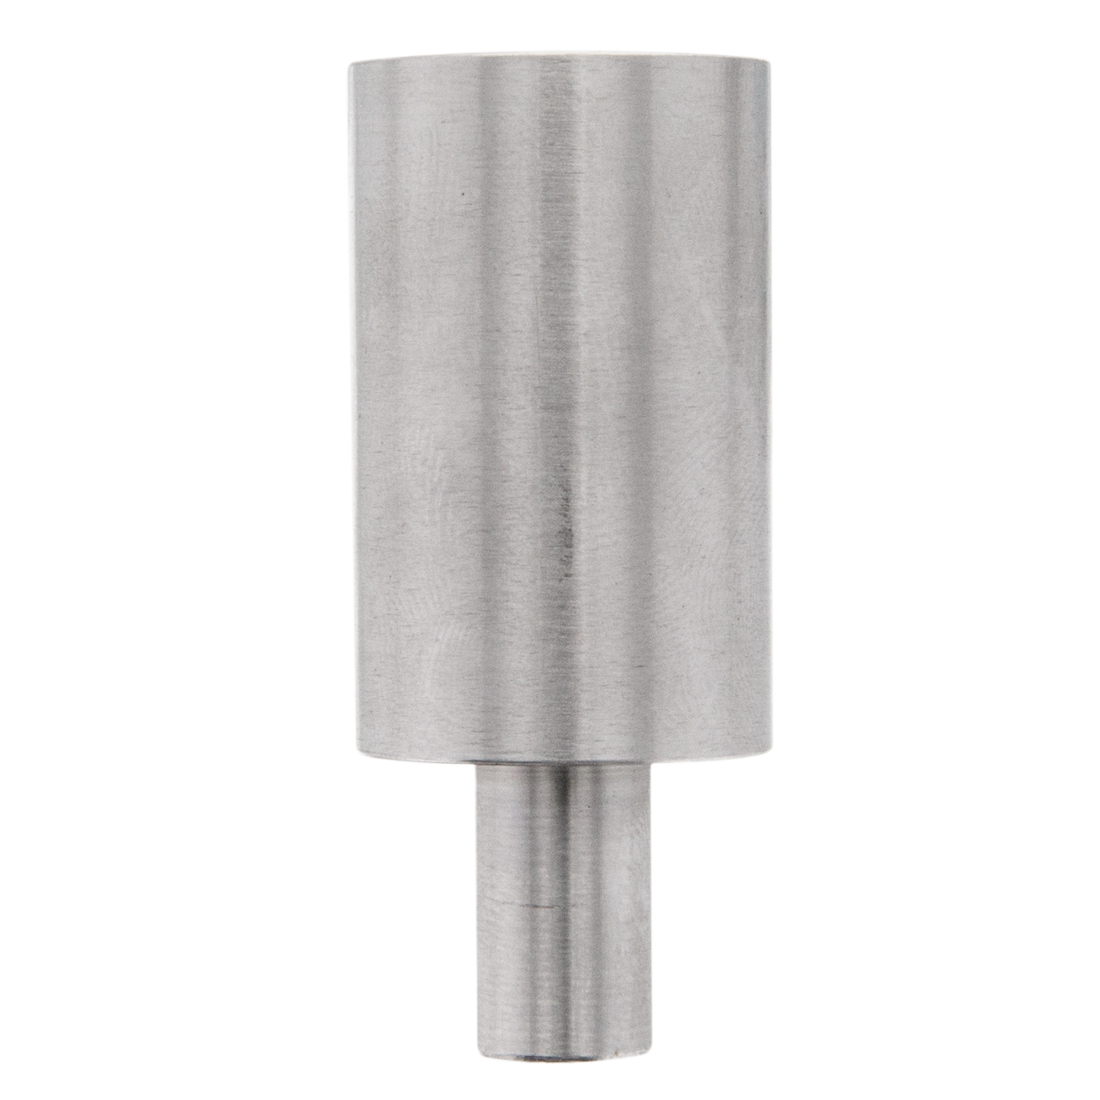 19/22 Male Joint Grinding Bit